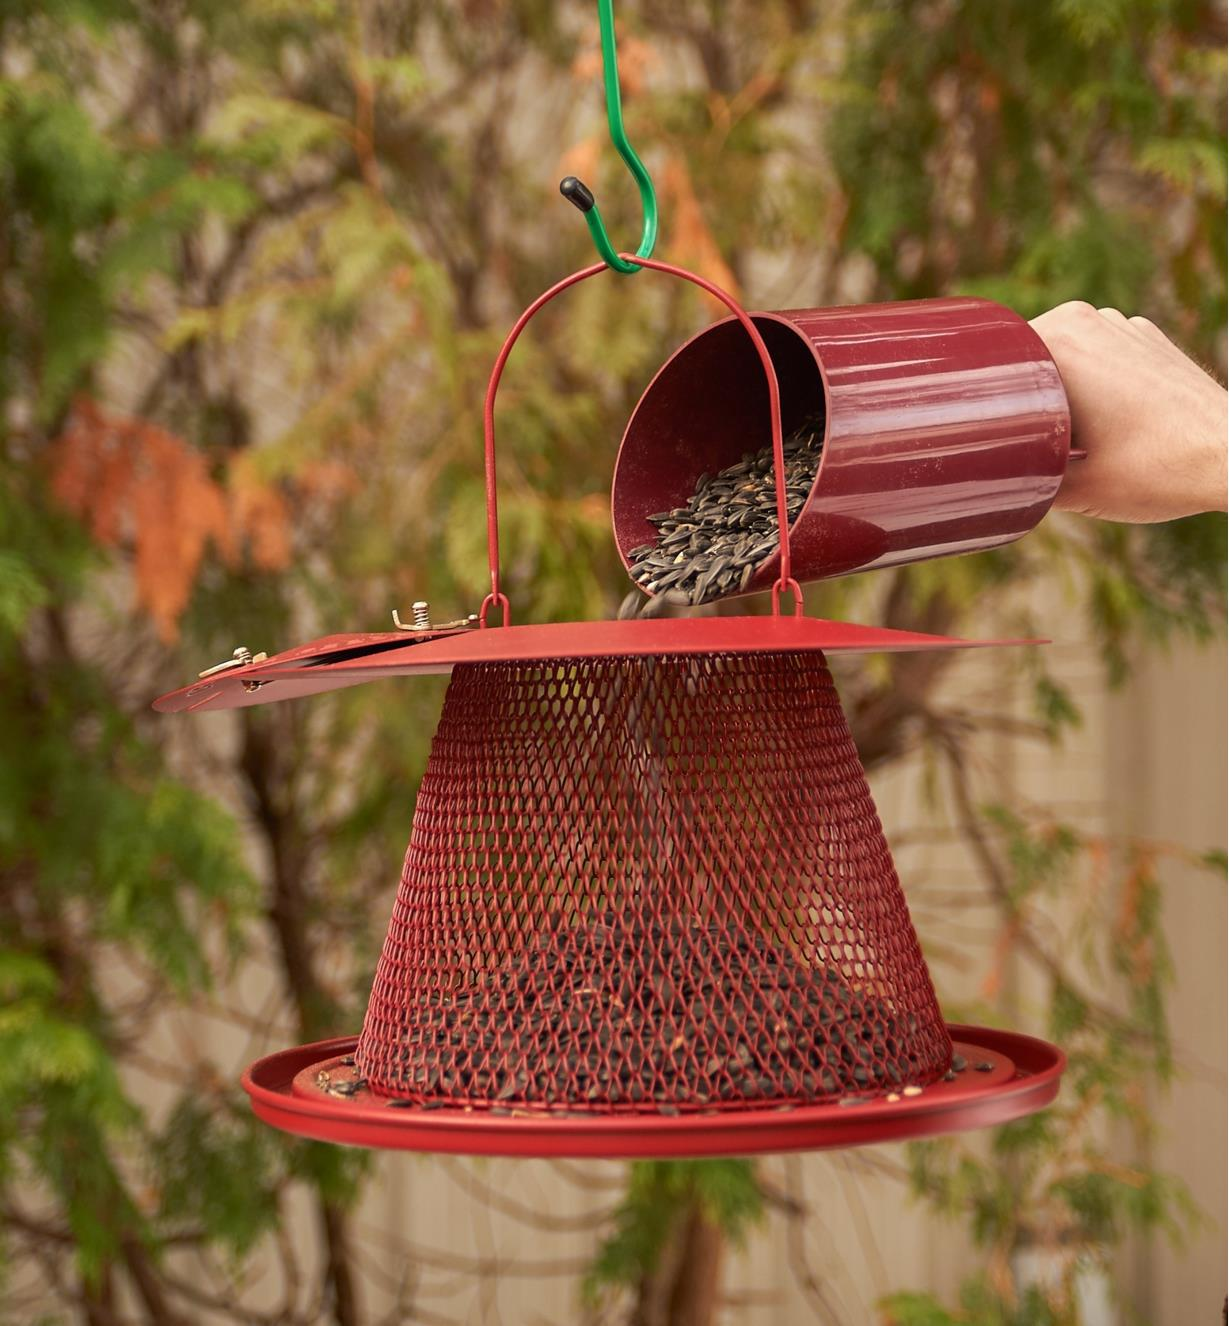 Seeds poured into collapsible bird feeder through an opening in the top